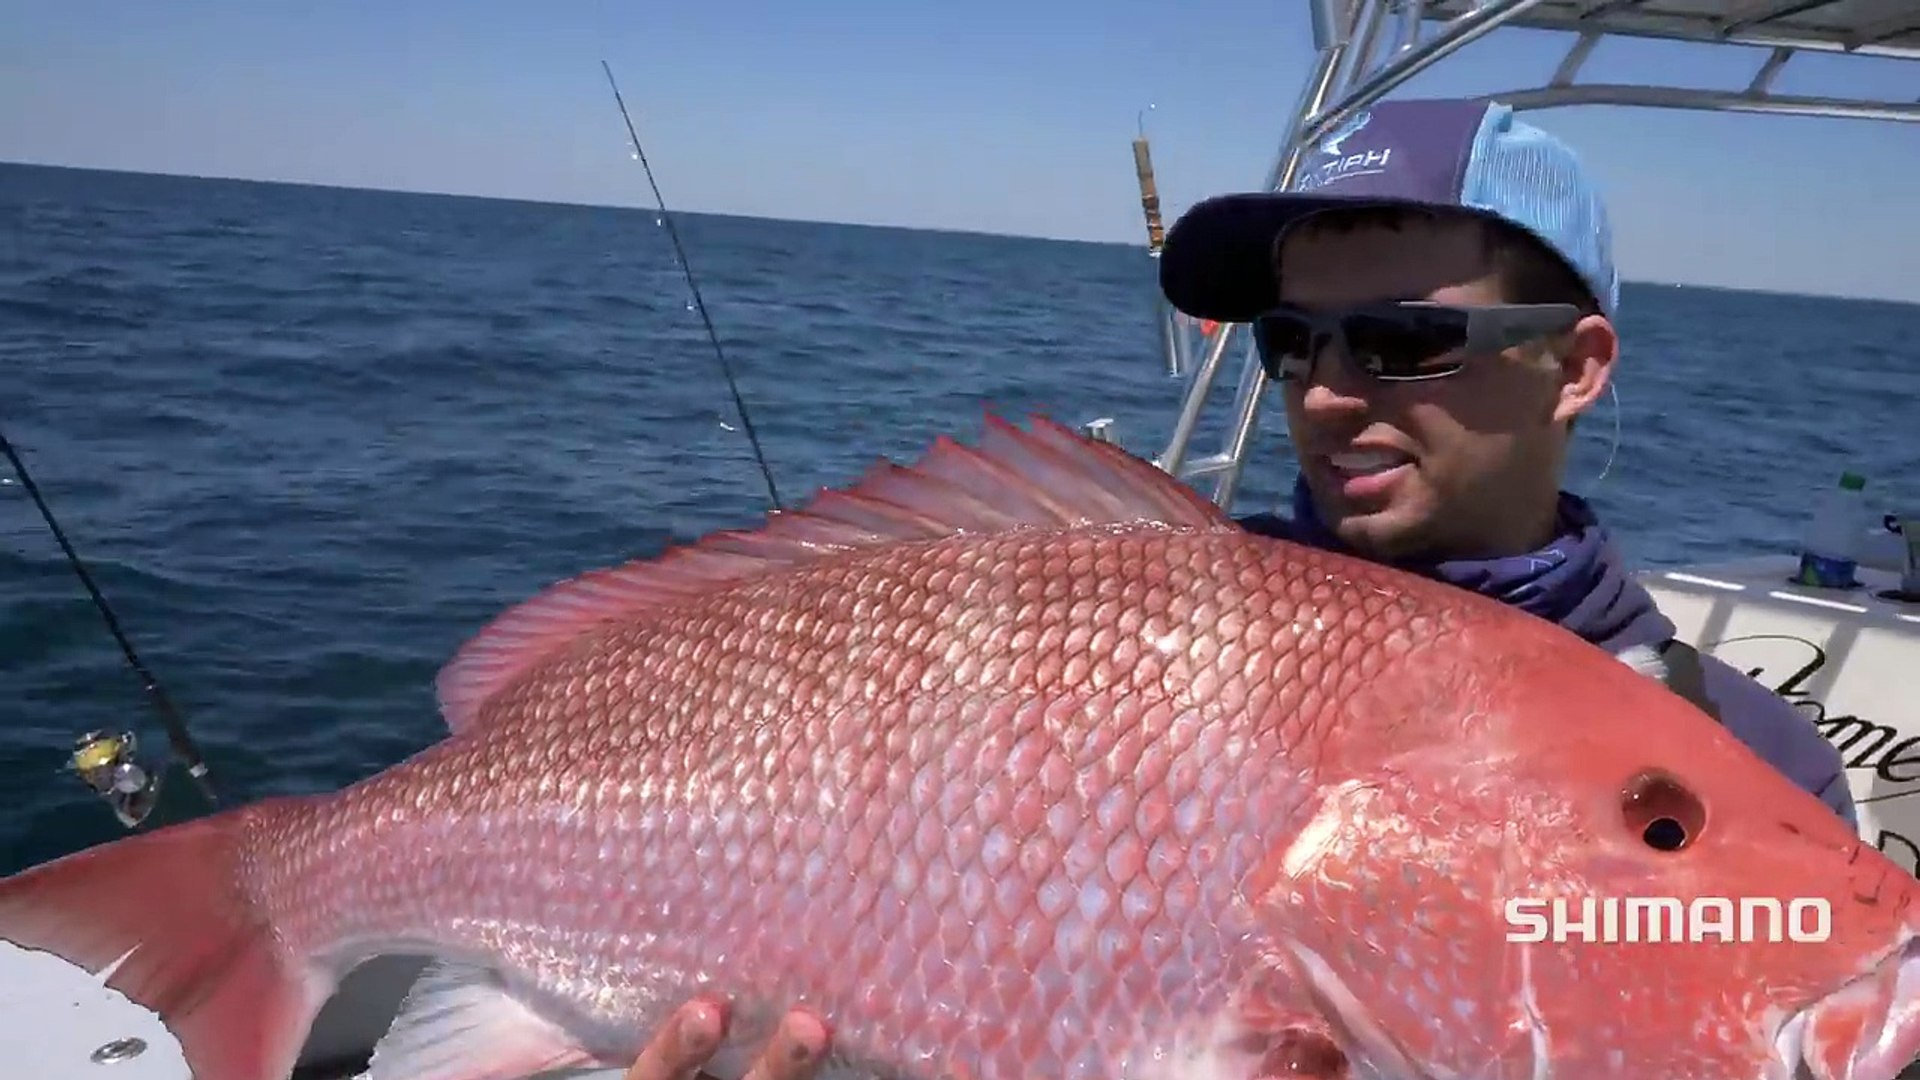 Searching for Giant Cobia and Monster Snapper Fishing, Catch N Cook - 4K